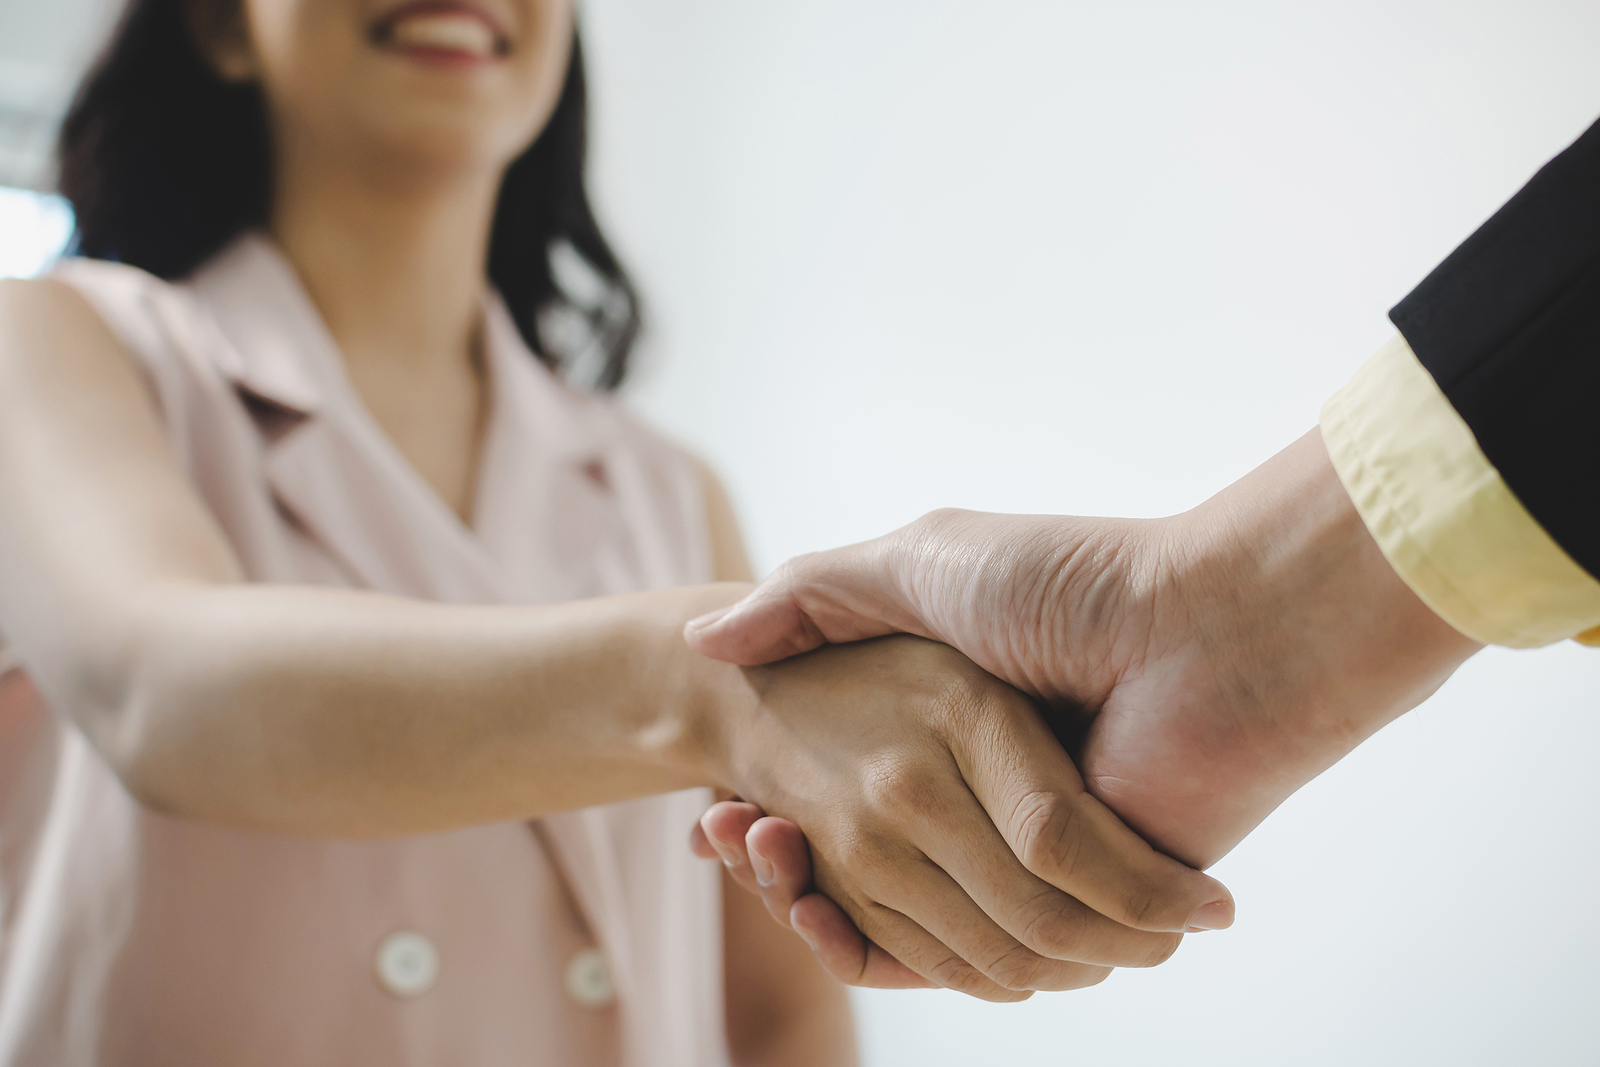 Young Woman Shaking Hands with Employer over Successful Contract Negotiations